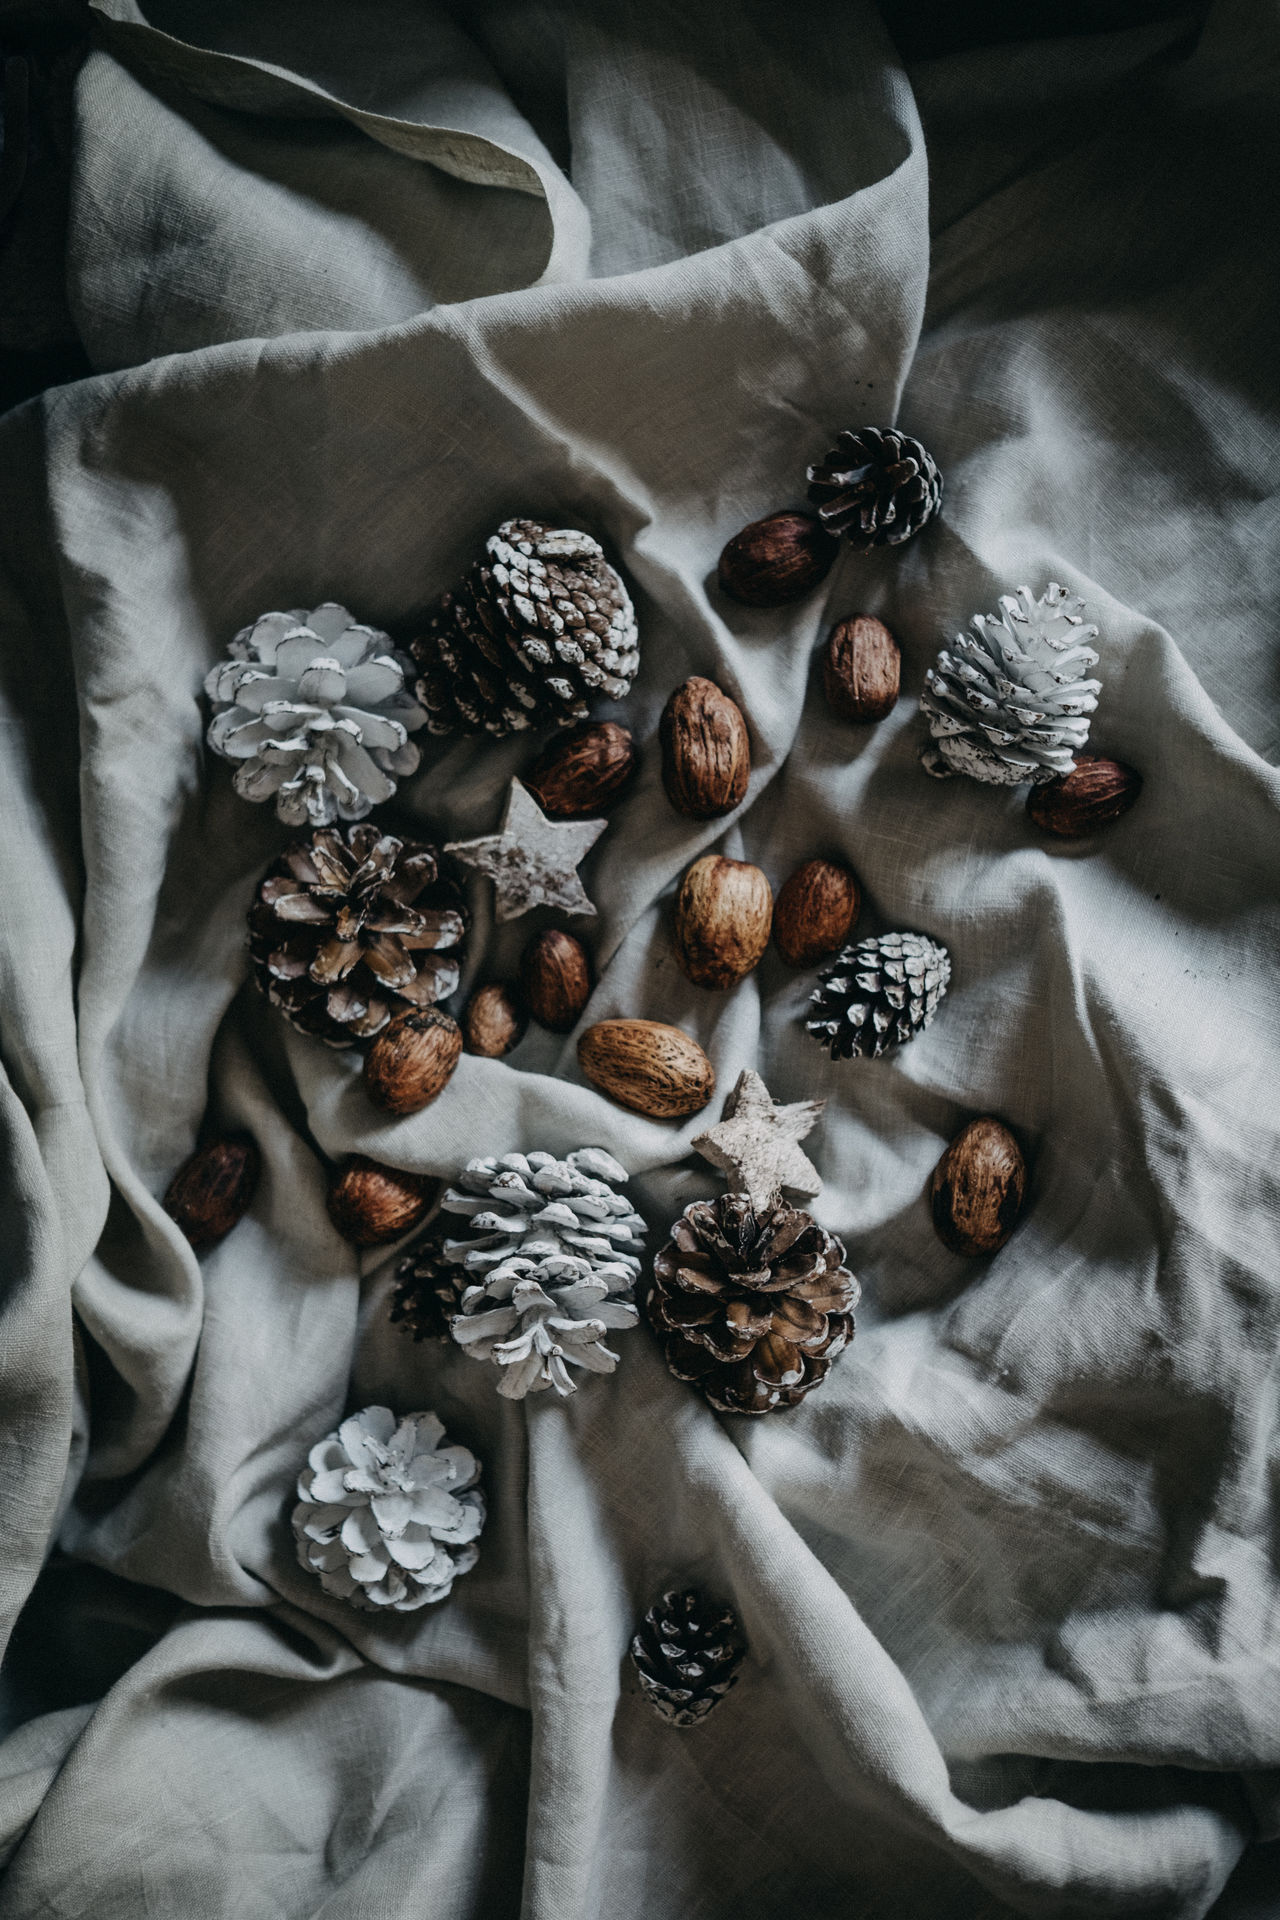 Directly above shot of pine cones and walnuts on textile during christmas